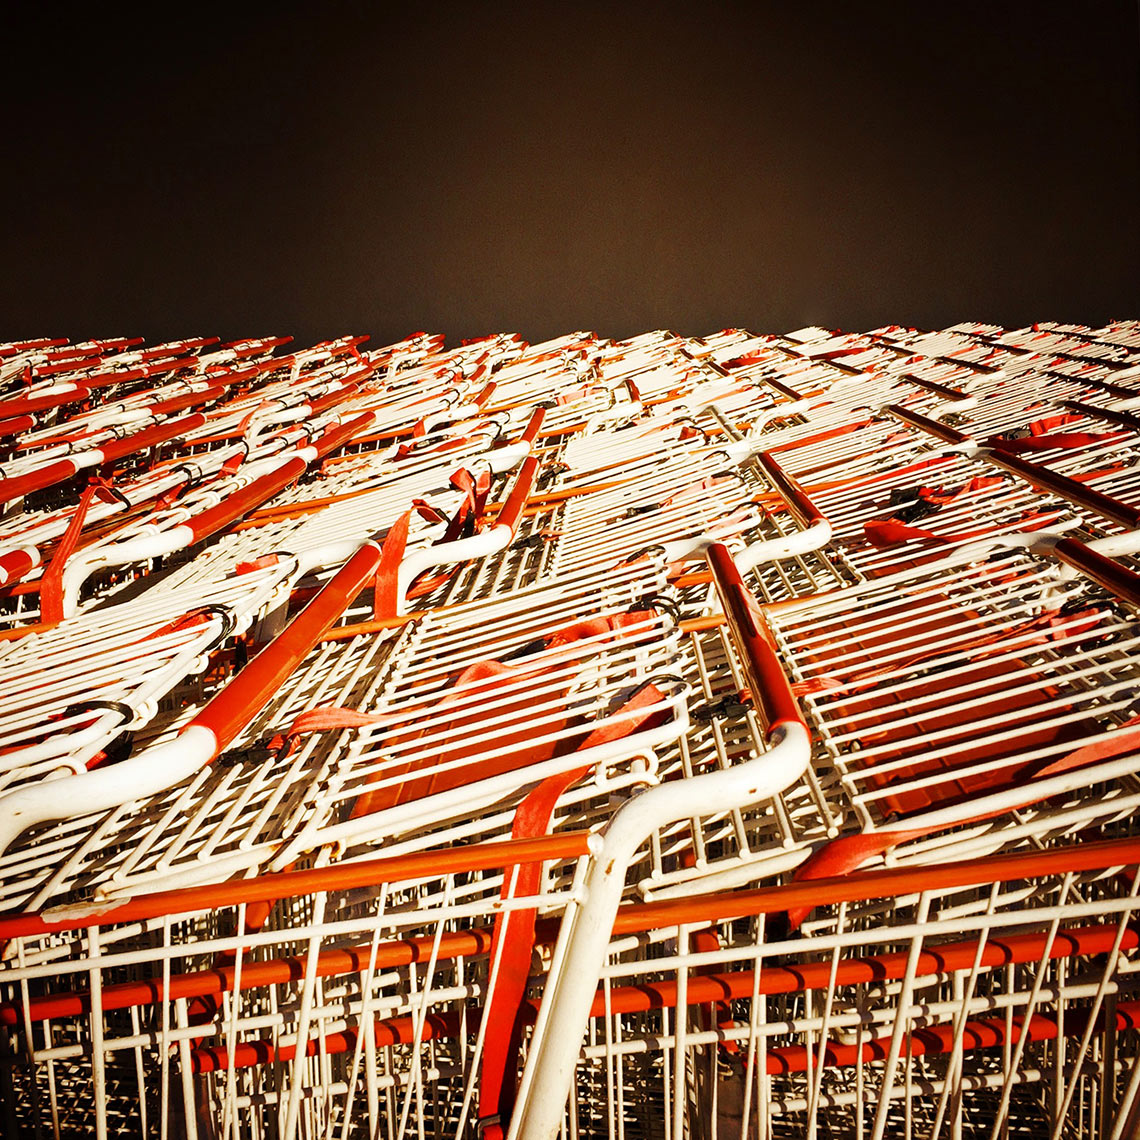 Image of Shopping Carts | Tosca Radigonda Photography